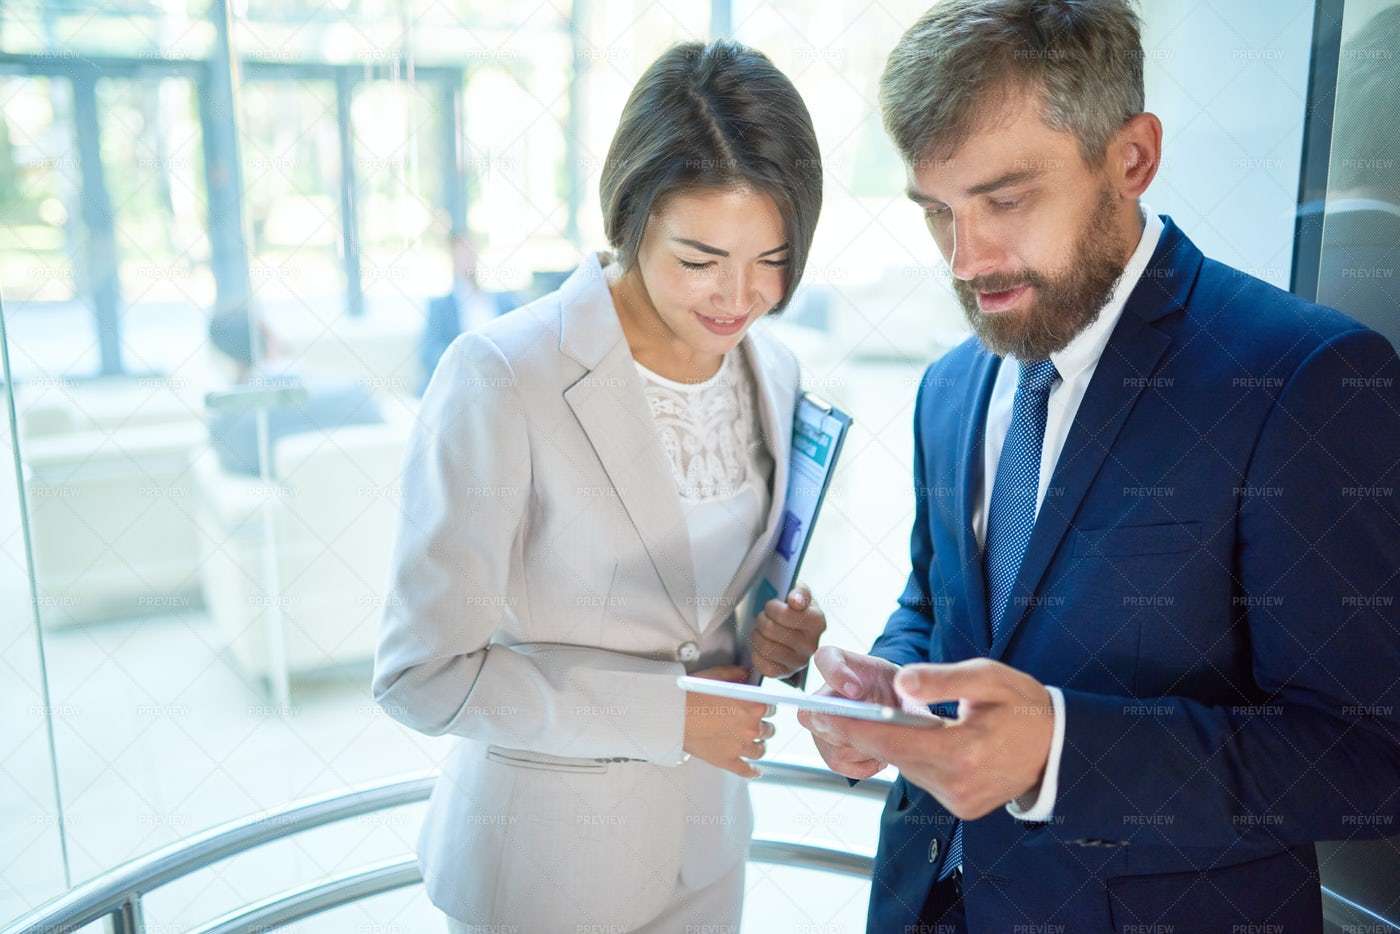 Business People In Glass Elevator: Stock Photos